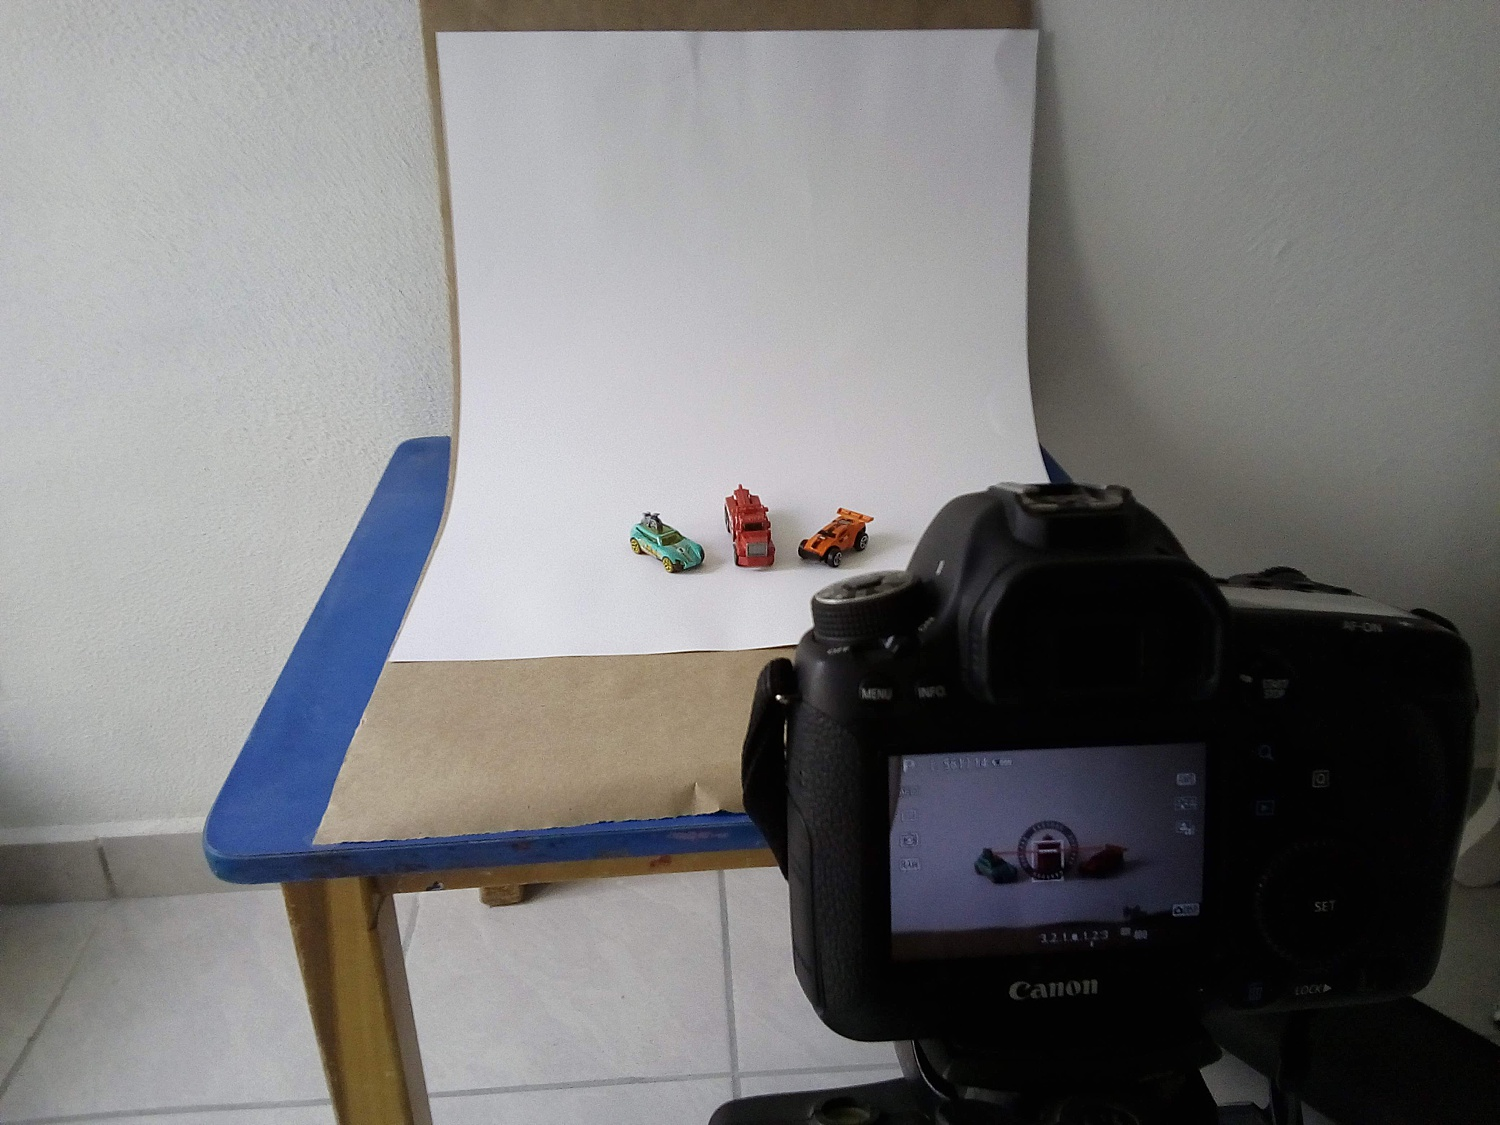 tabletop photography setups